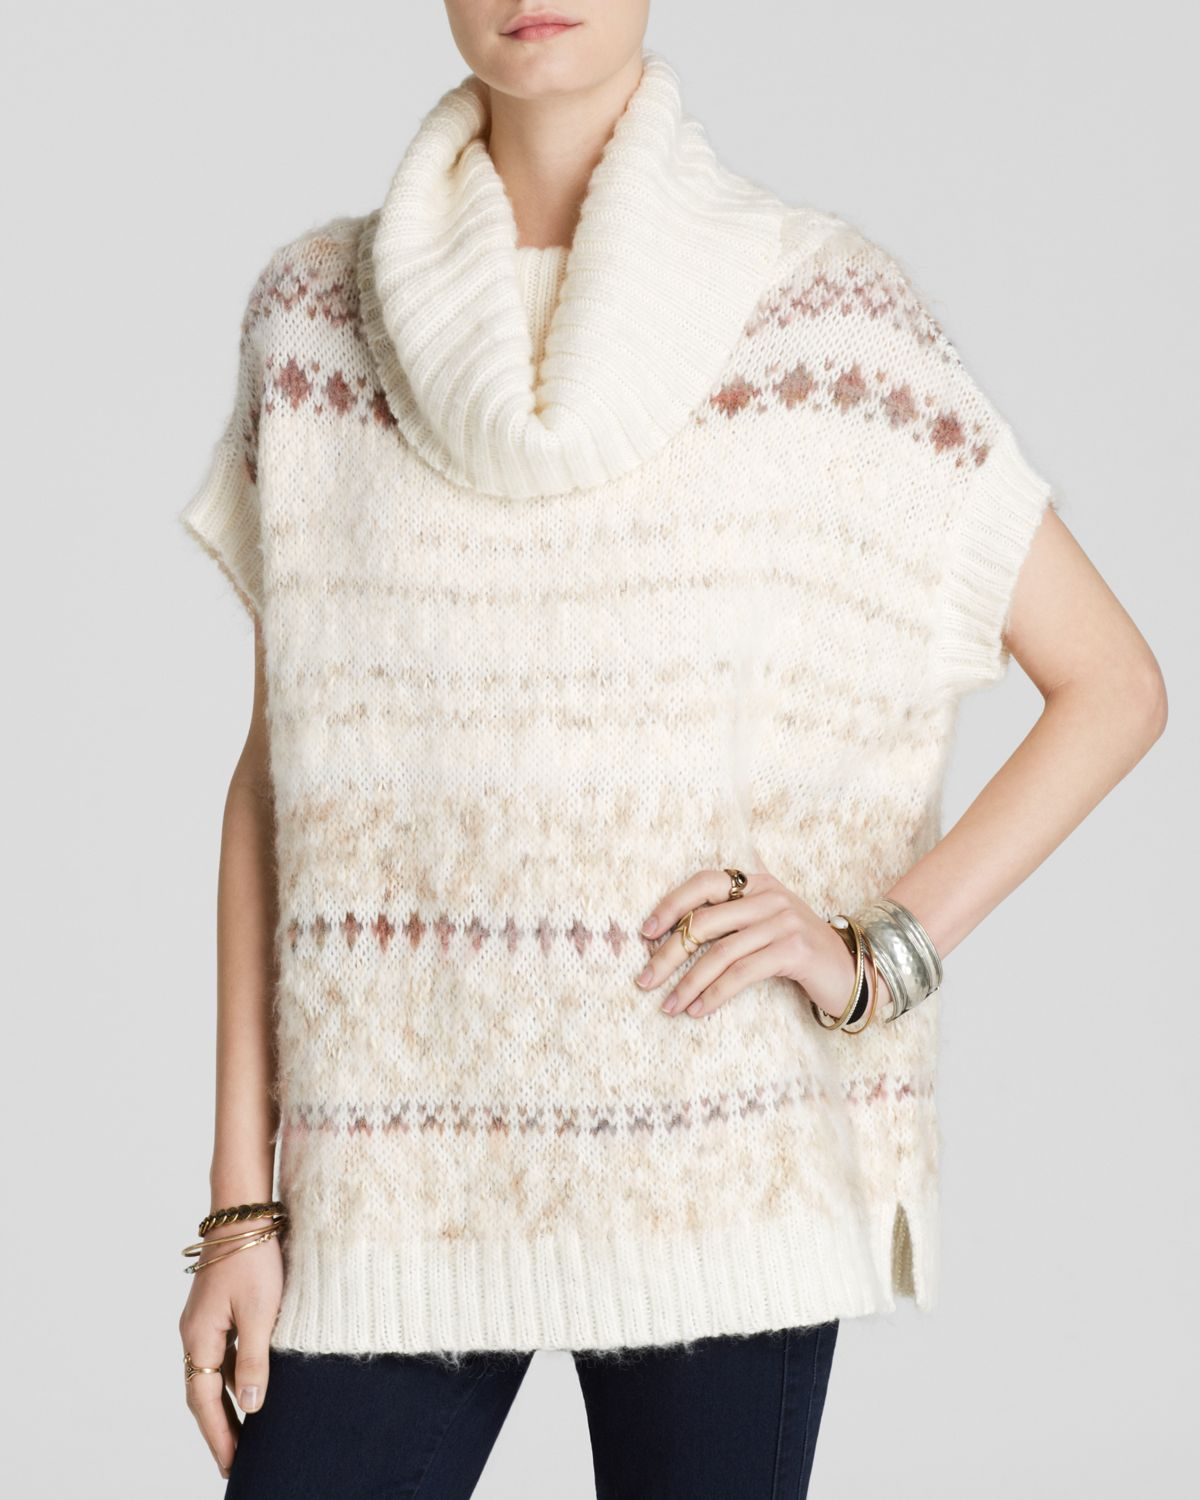 a527a07f65437f Free People Sweater Vest - Snow Bunny Fair Isle Turtleneck in ...